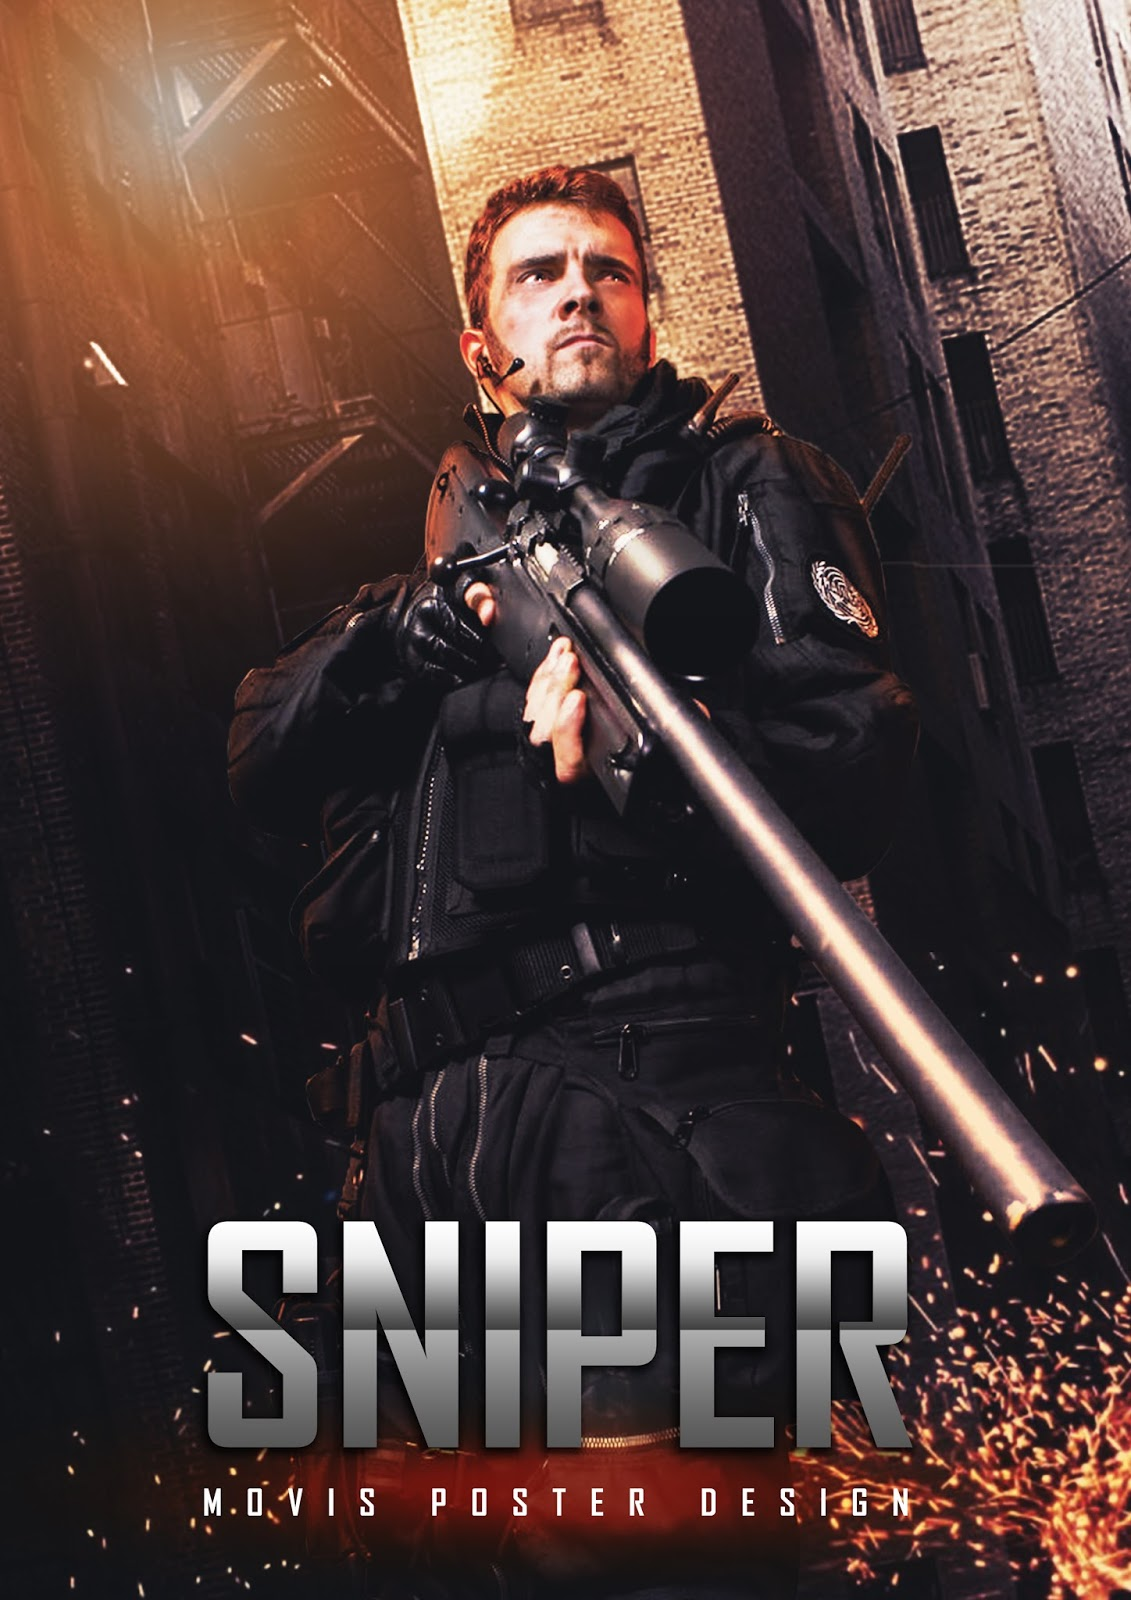 Creating sniper movie poster manipulation effects using adobe tutorial resources baditri Gallery